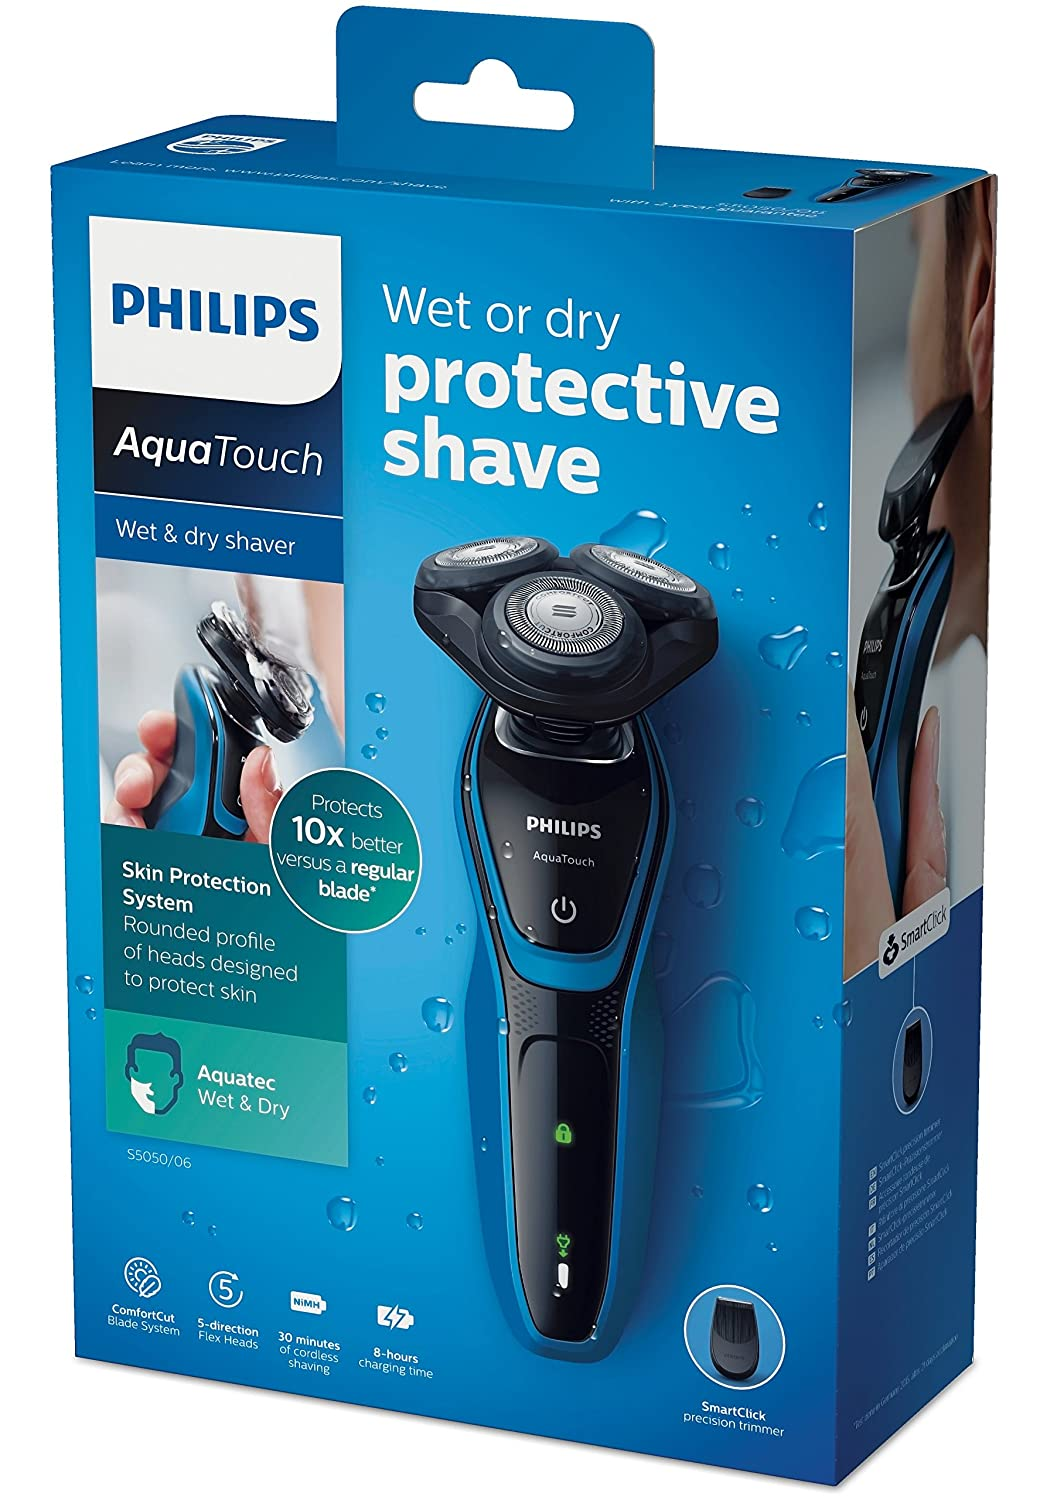 Philips S5050/06 Aquatouch Electric Shaver enlarge